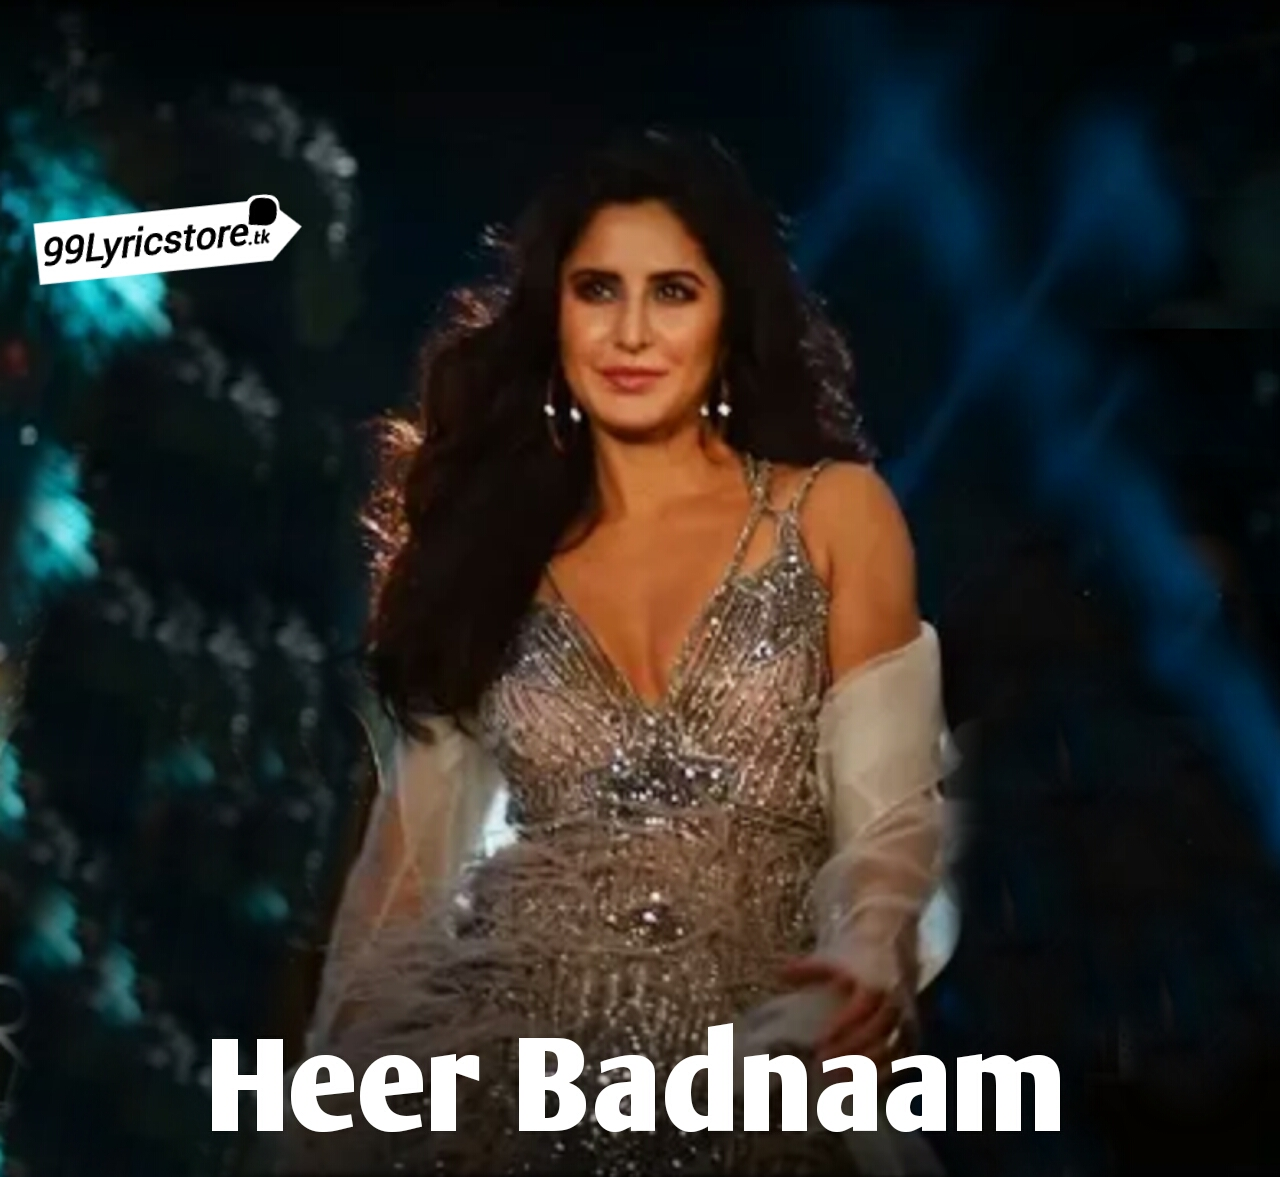 Zero movie Song Lyrics, Shahrukh Khan song lyrics, Katrina Kaif Song Lyrics, Tanishq Baghchi Song Lyrics, Latest Songs of Zero movie, Heer Badnaam' song images, Zero movie Song 2018, Latest Bollywood movie 2018